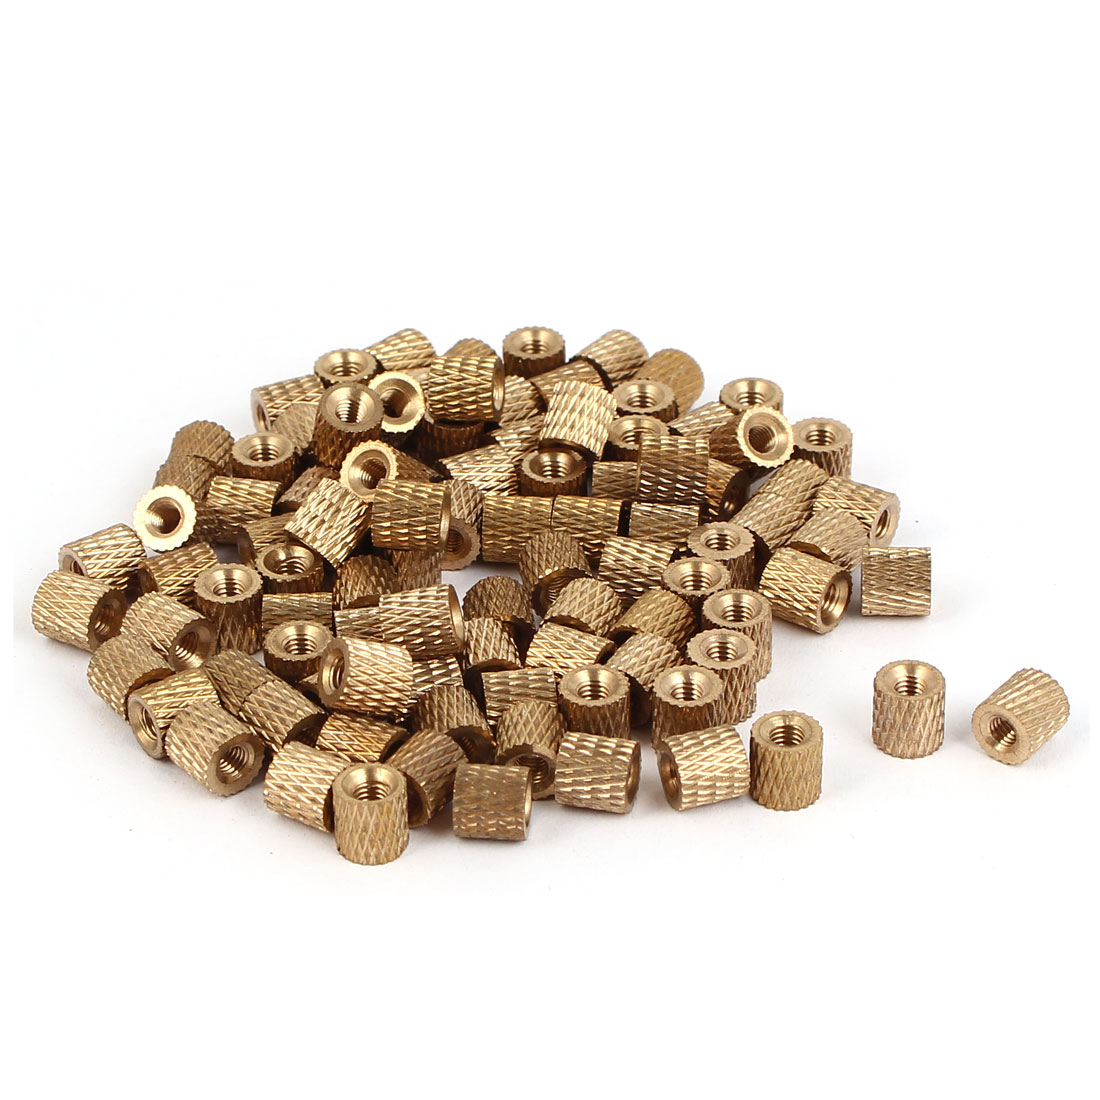 M3 x 6mm x 6mm Brass Cylinder Injection Molding Knurled Embedded Nuts 100PCS